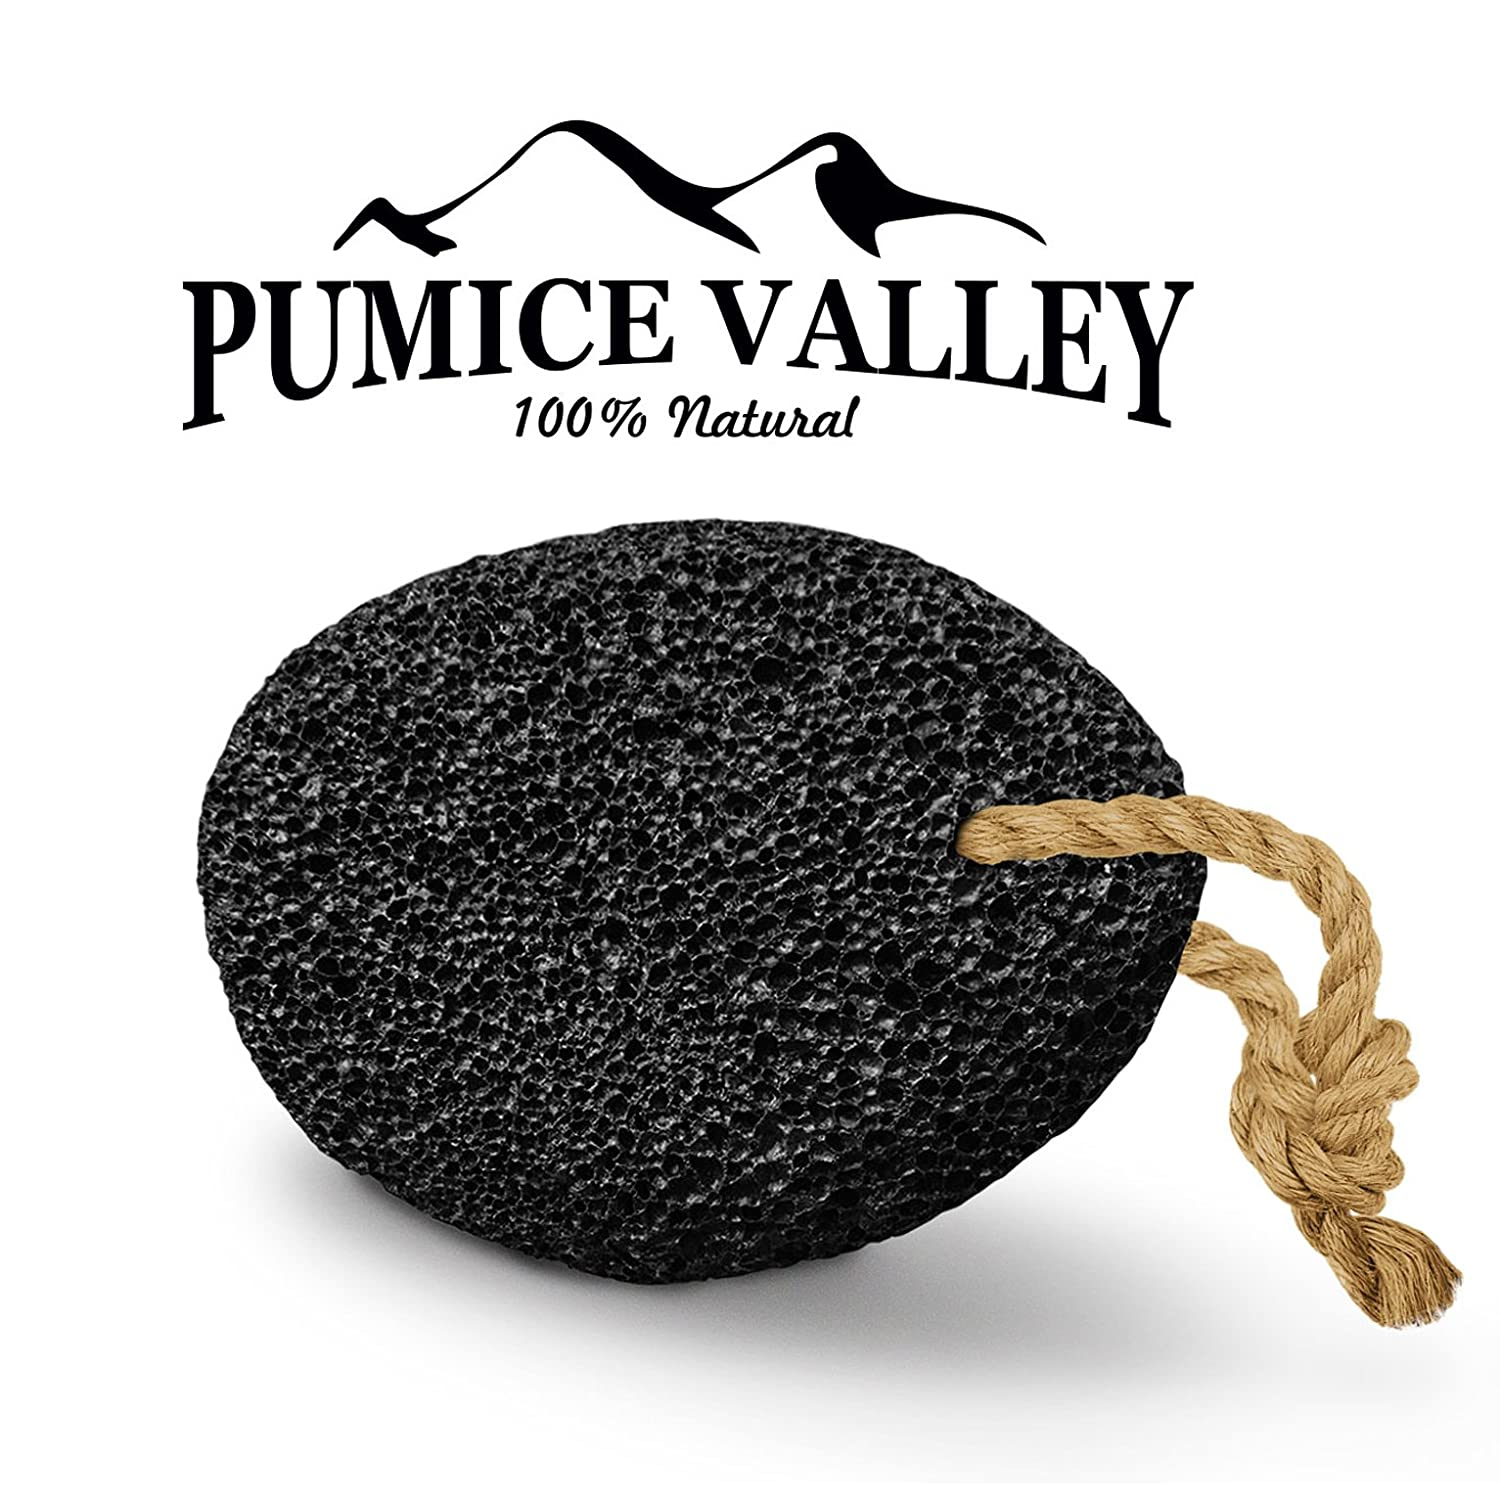 Pumice Stone - Natural Earth Lava Pumice Stone Black - Callus Remover for Feet Heels and Palm - Pedicure Exfoliation Tool - Corn Remover - Dry Dead Skin Scrubber - Health Foot Care Pumice Valley